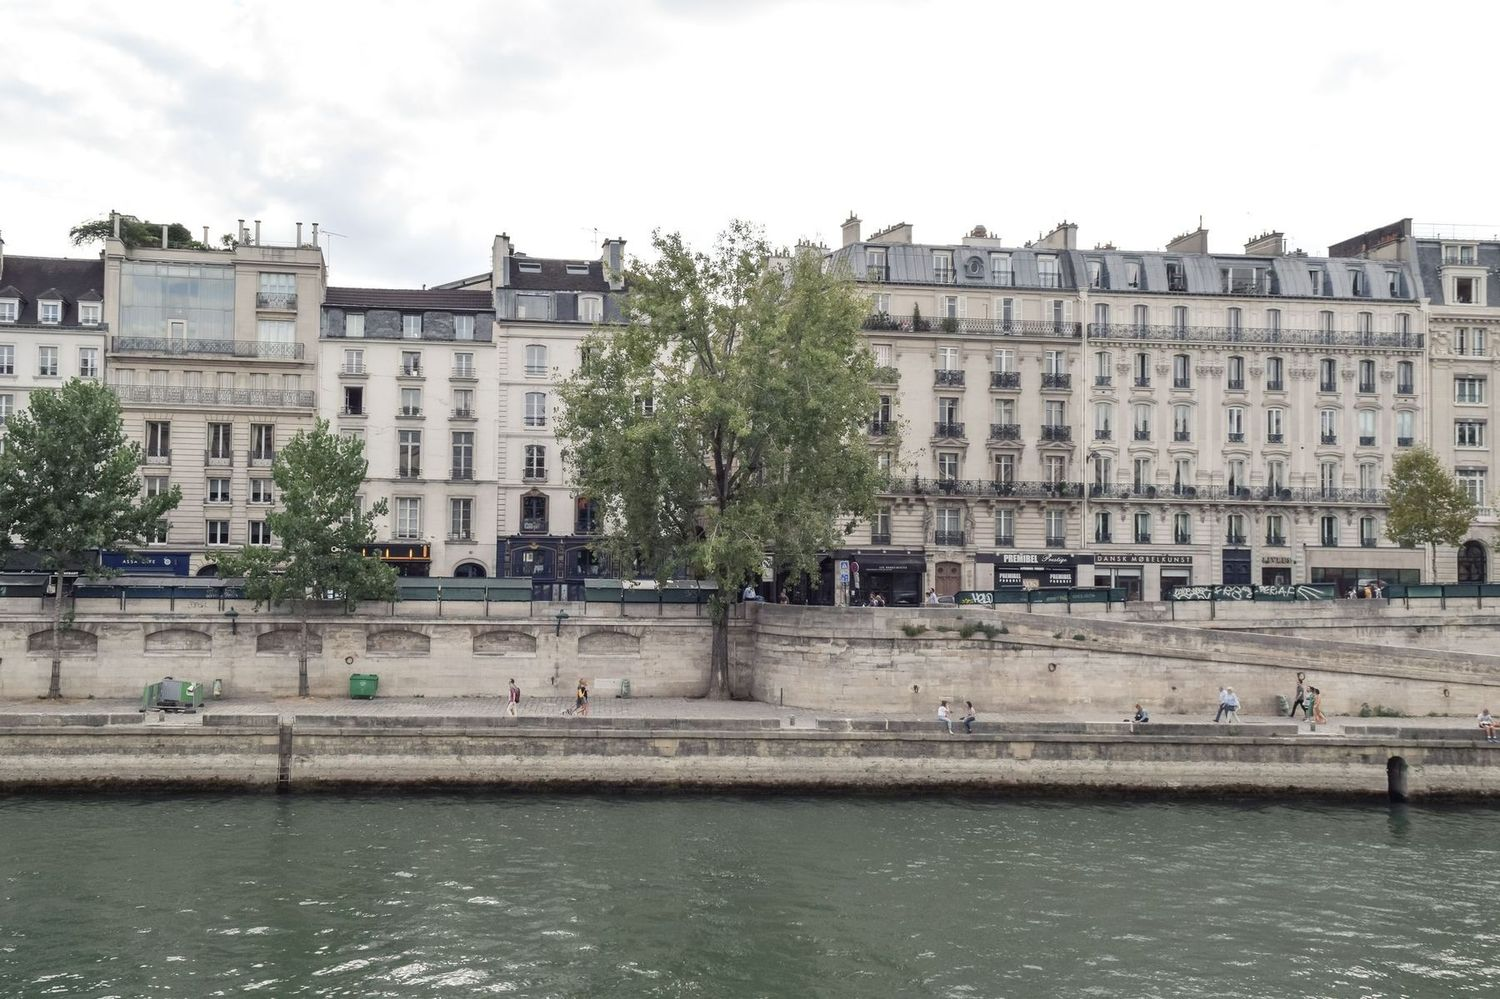 Parisian apartment buildings along the Seine River, Île de la Cité